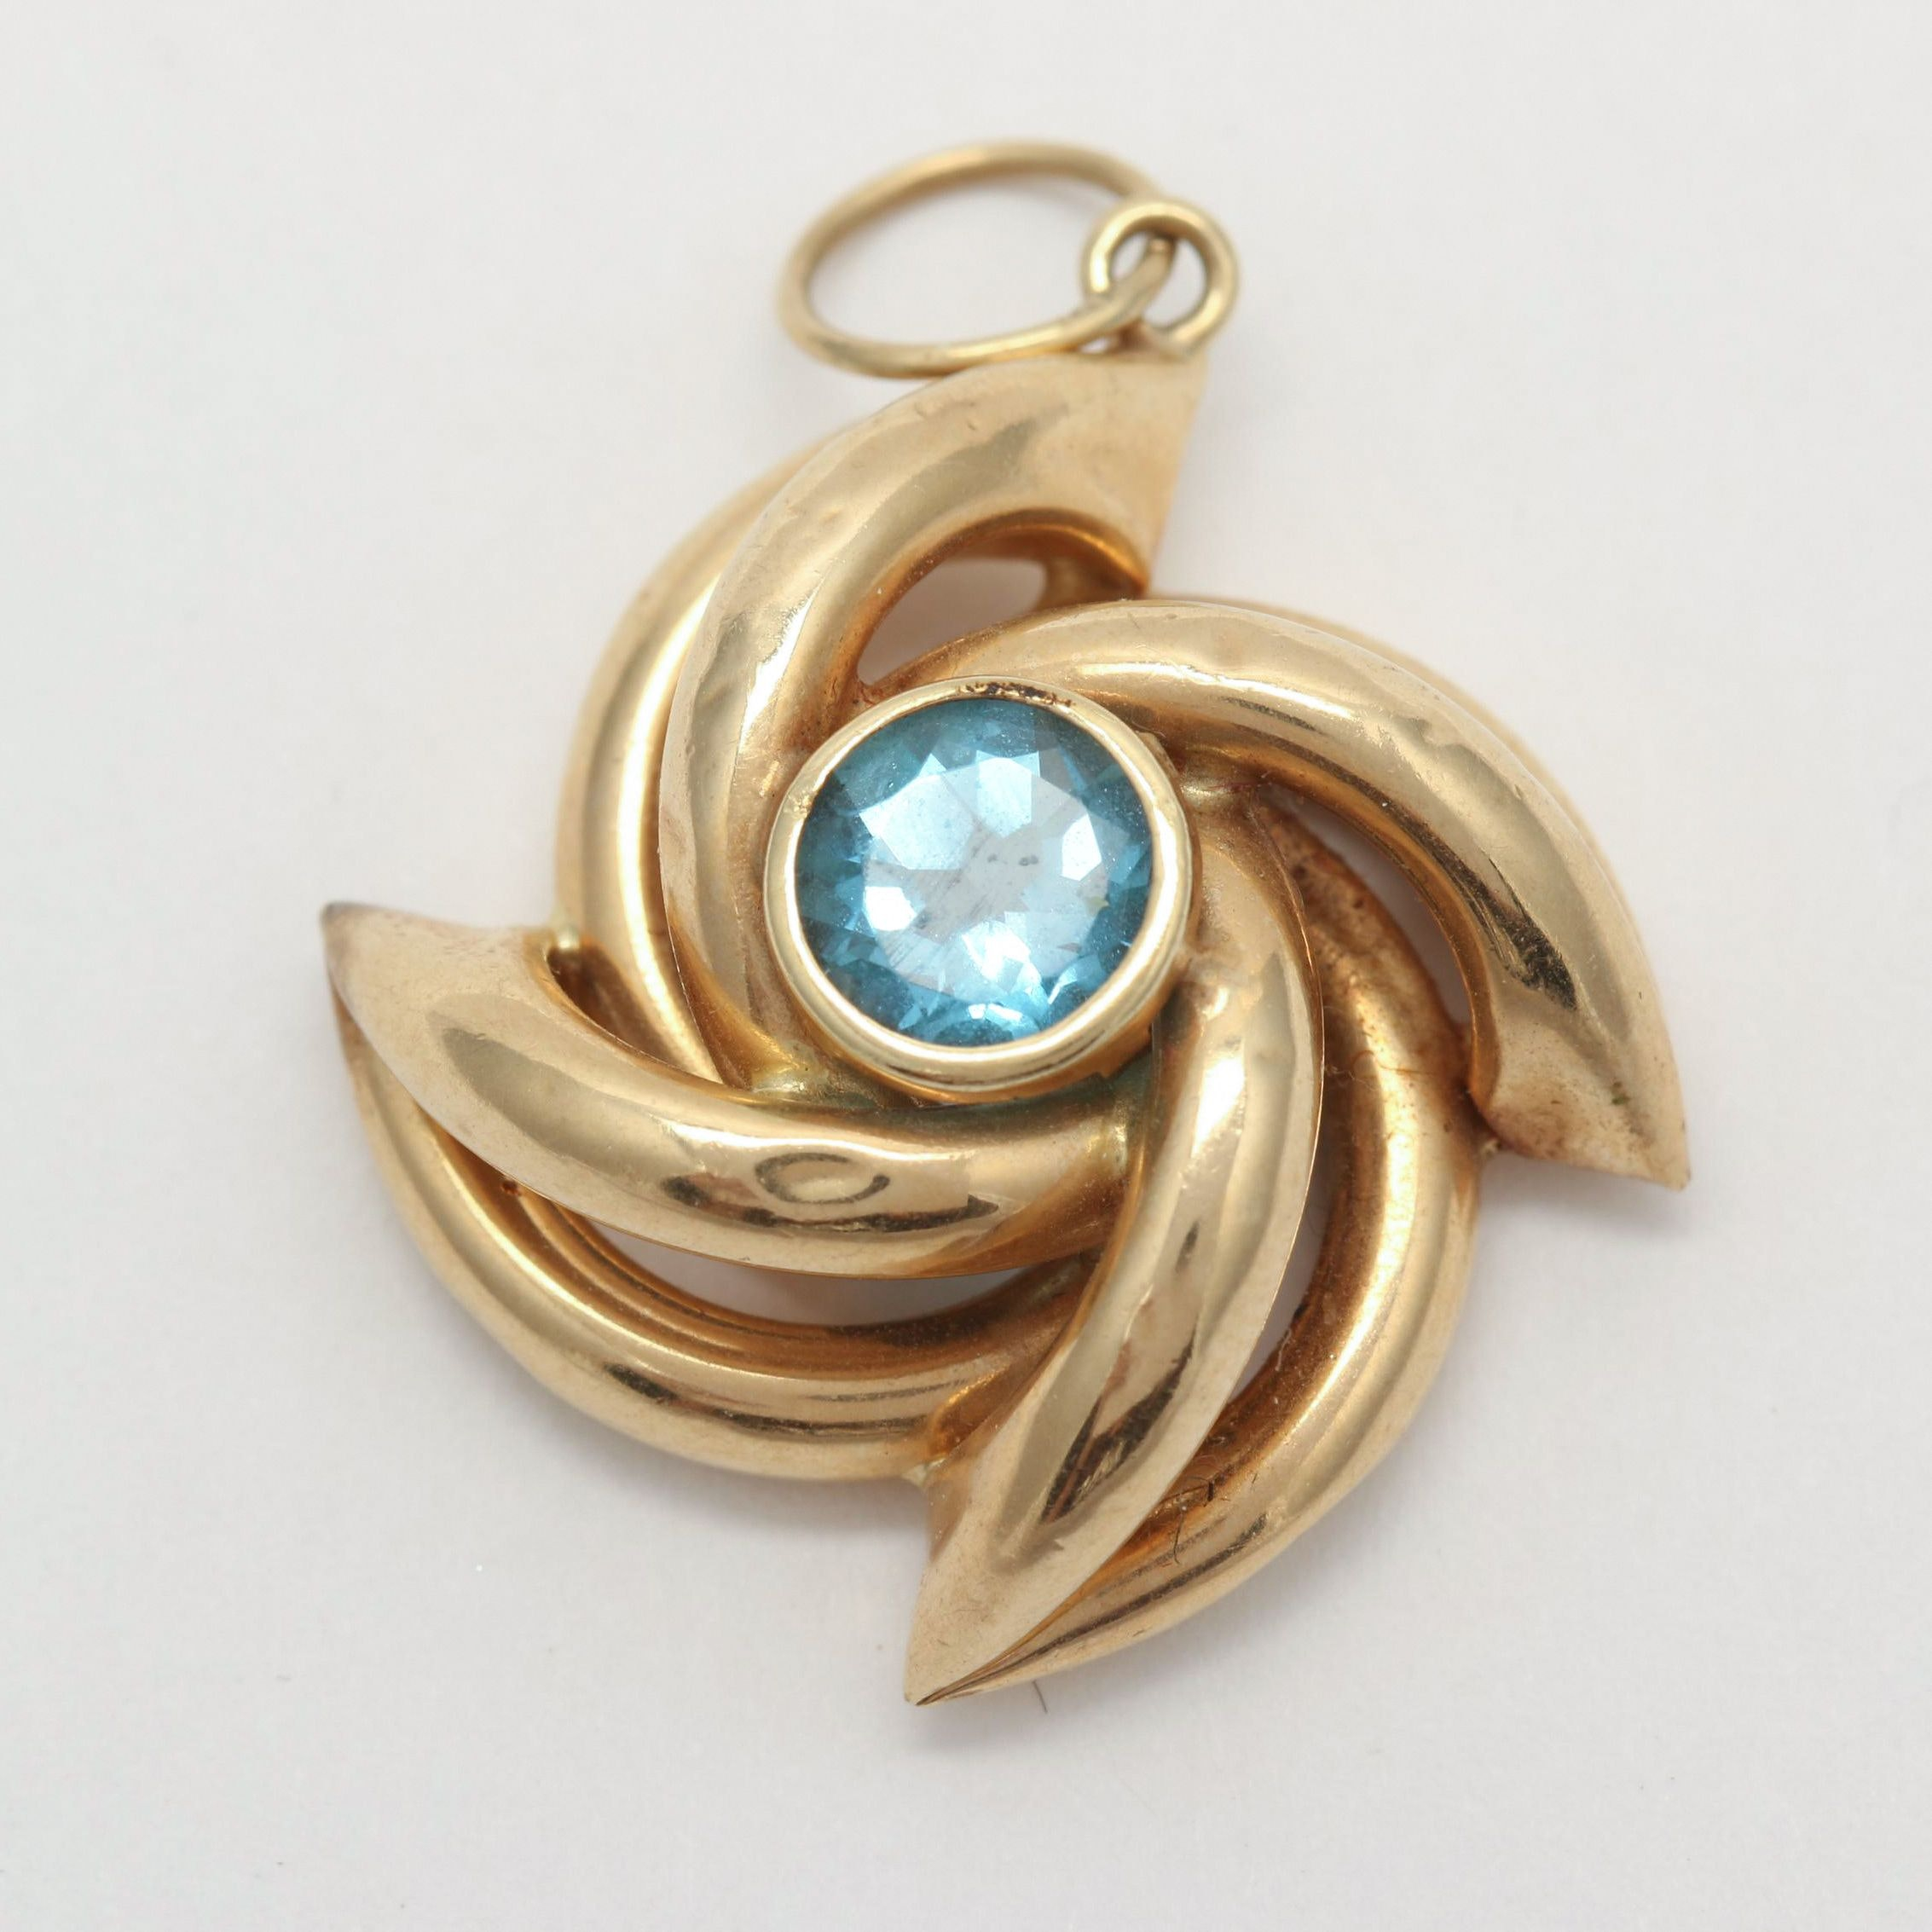 14K Yellow Gold 1.35 CT Blue Topaz Pendant